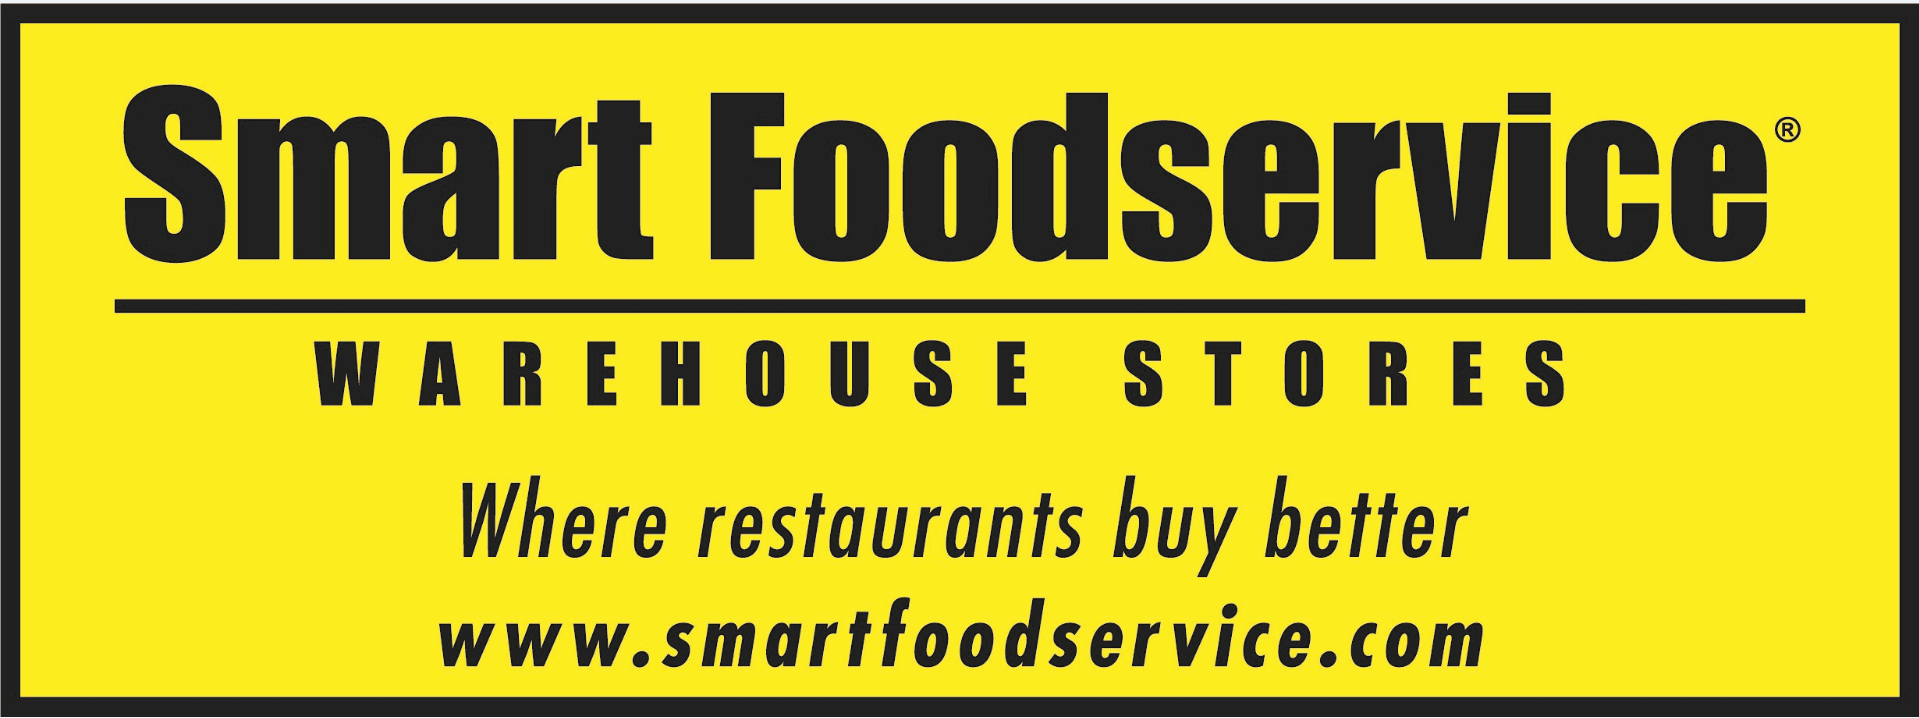 Smart Foodservice Warehouse Stores - Wikipedia